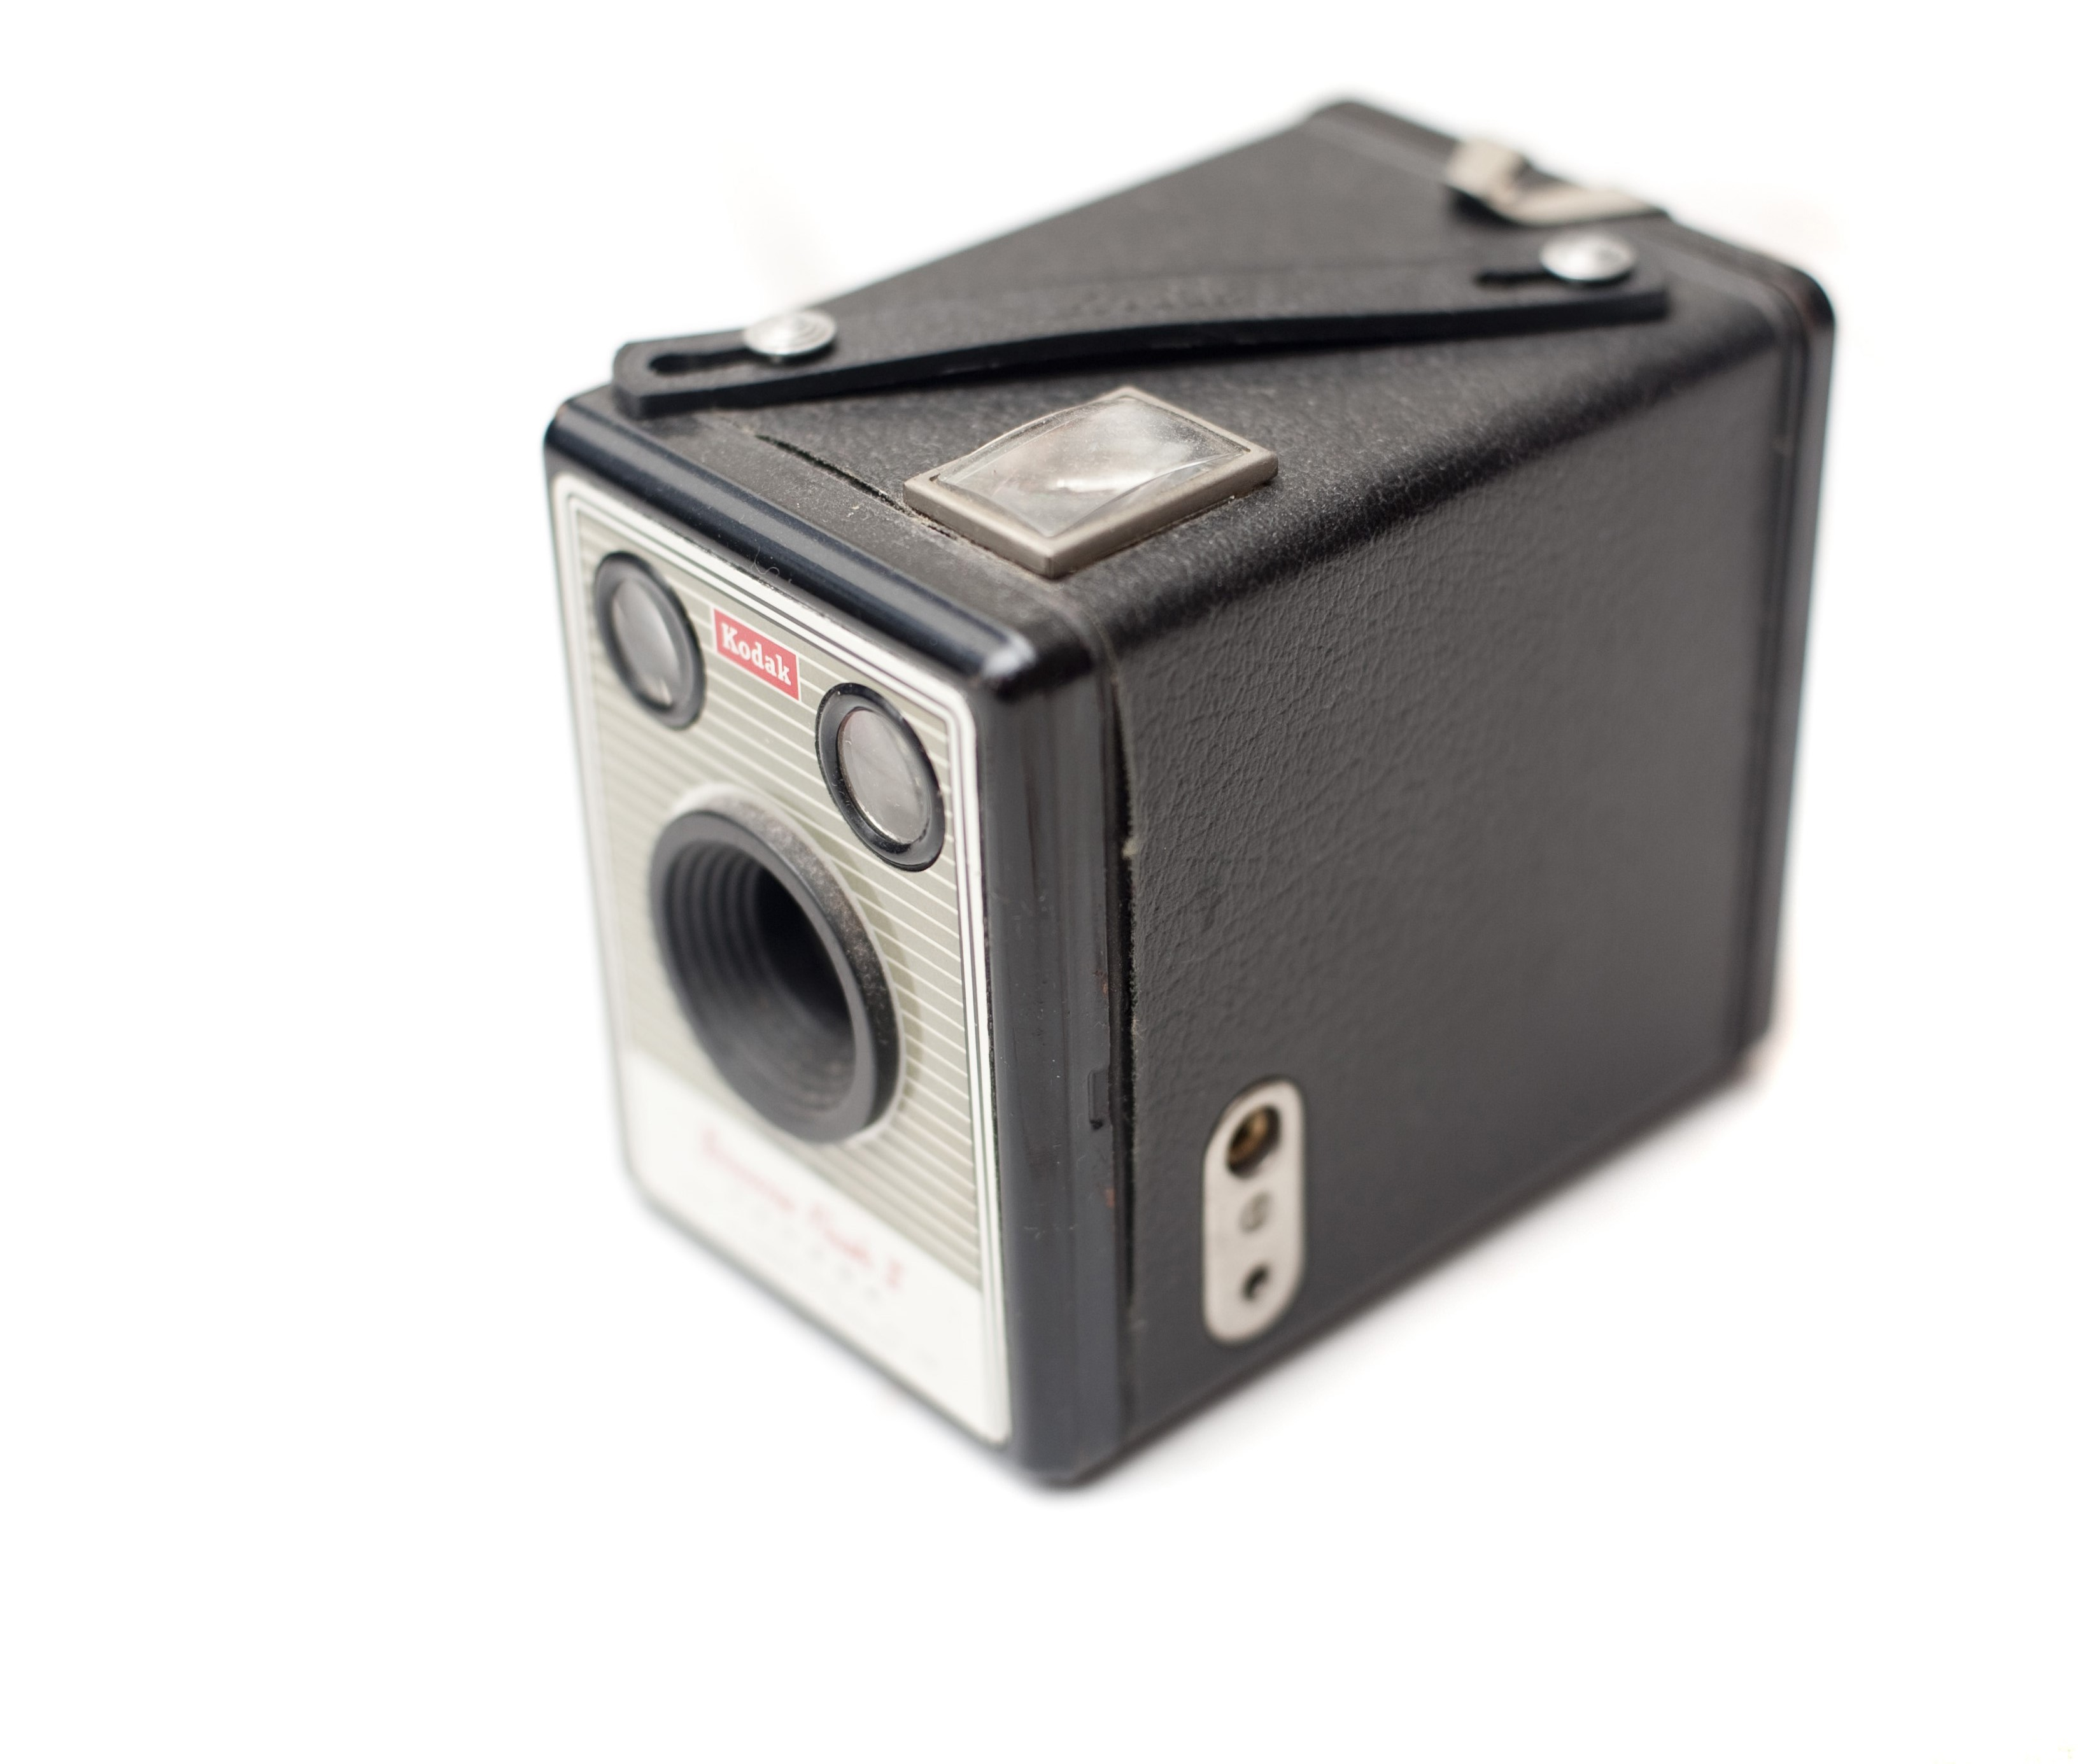 Old vinatge box camera on a white background, high angle view with shallow dof